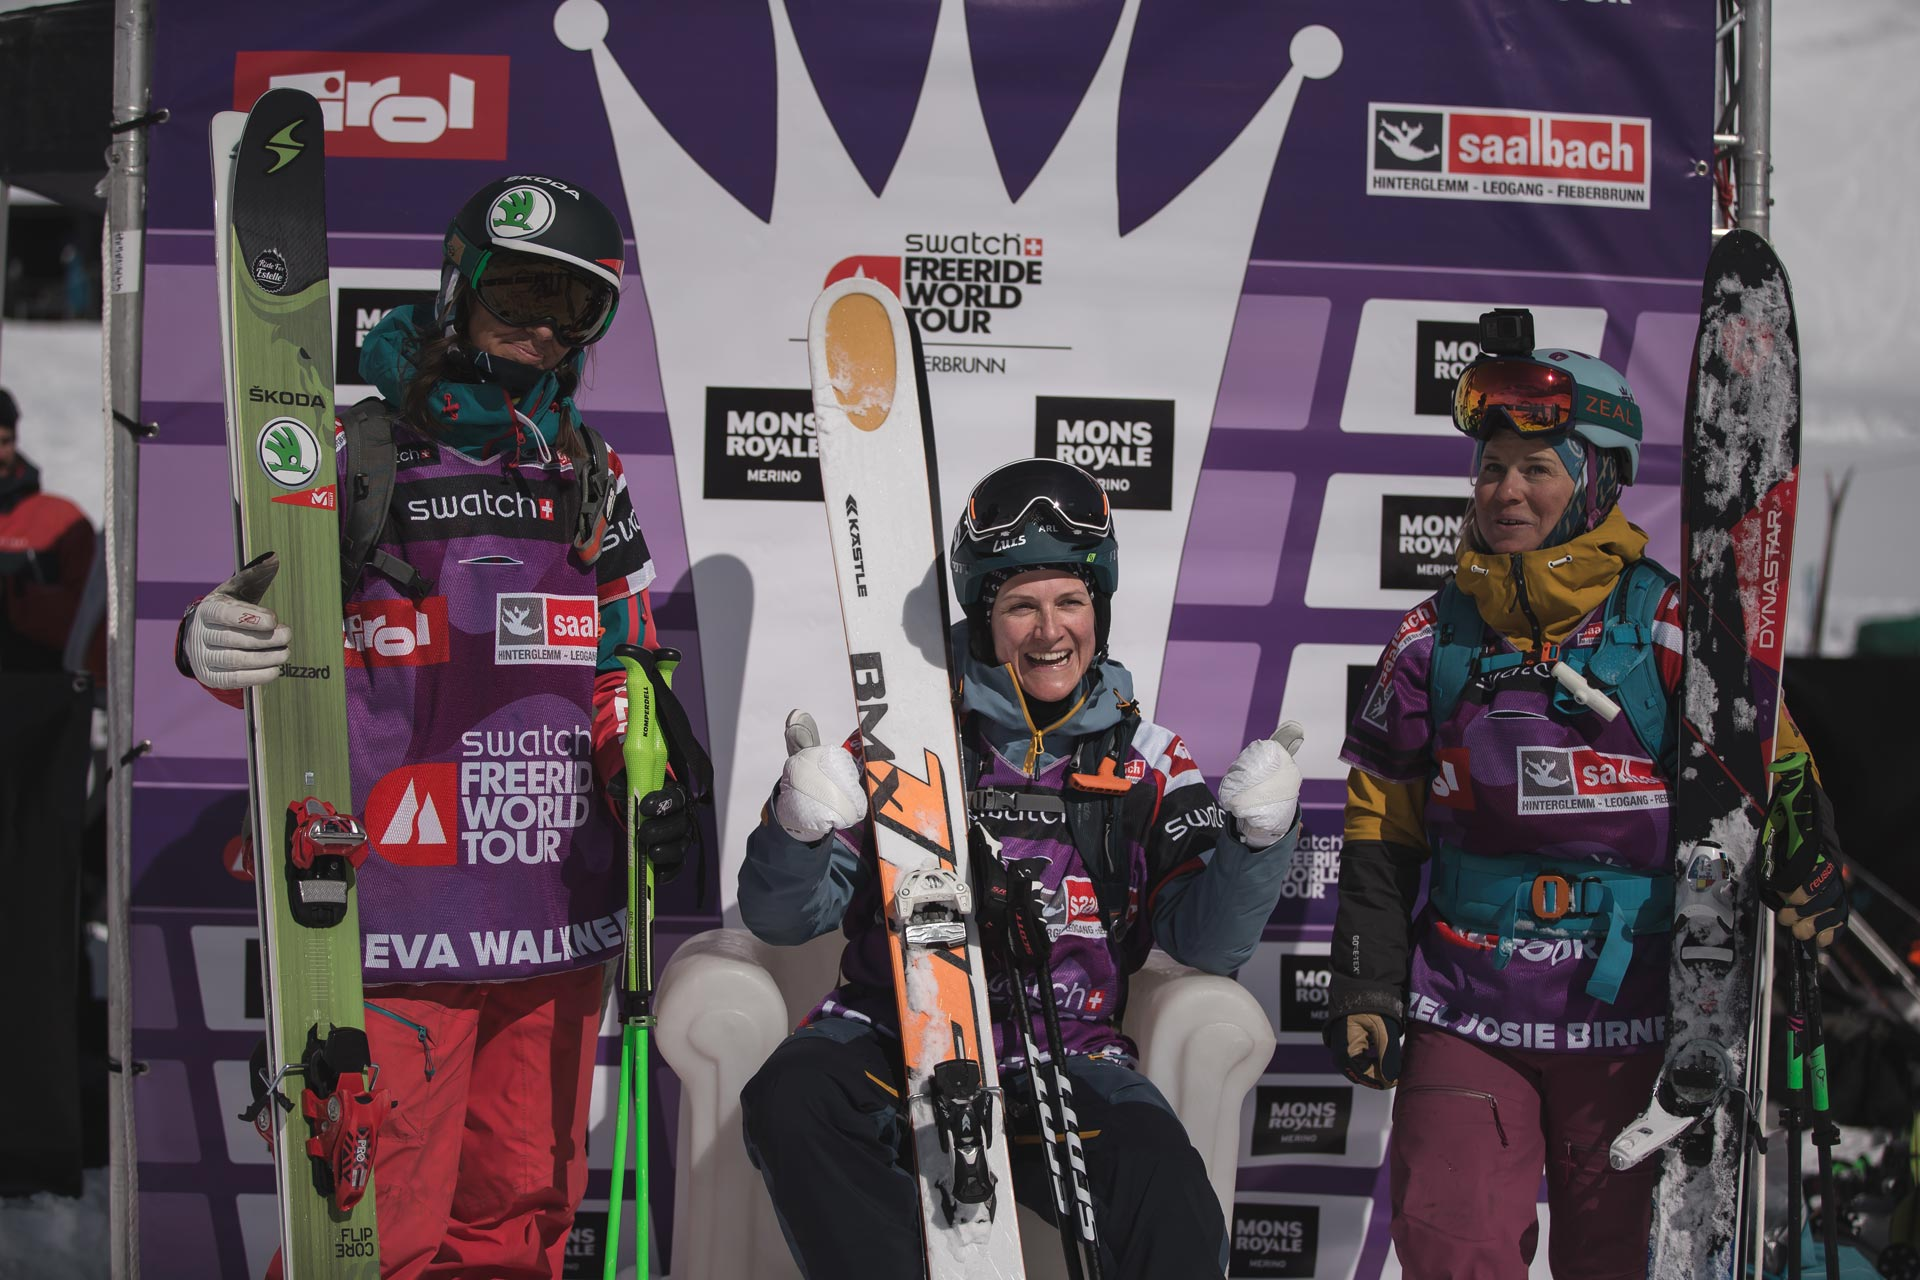 Die Top 3 Frauen beim Freeride World Tour Stopp in Fieberbrunn 2017: Eva Walkner, Lorraine Huber und Hazel Birnbaum - Foto: freerideworldtour.com / Mia Knoll